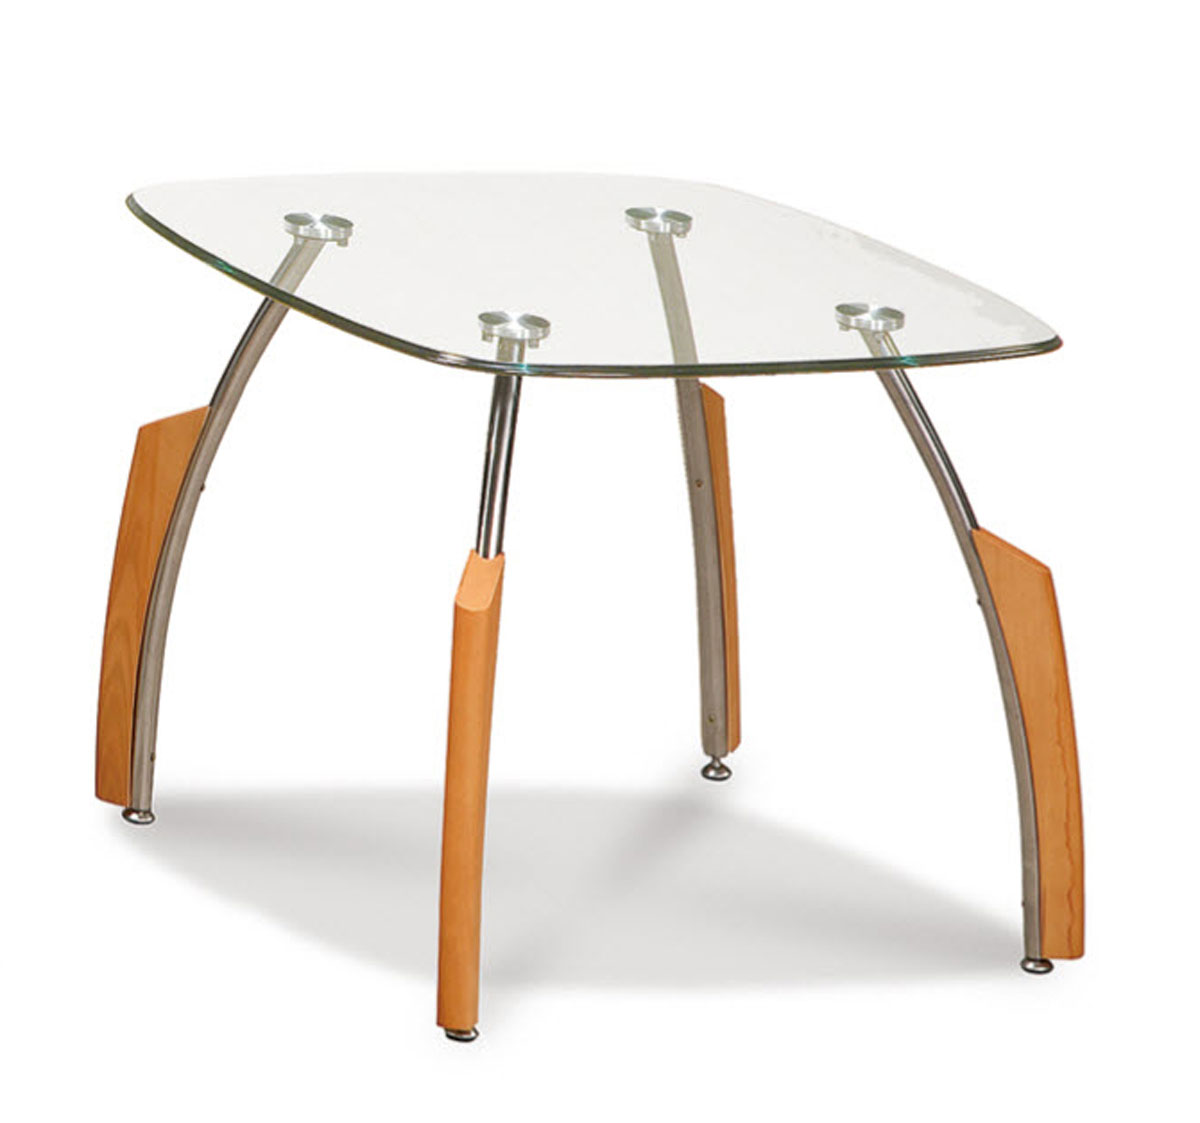 Global Furniture USA 138 End Table Beech - Silver/Beech - Metal and Wood Legs